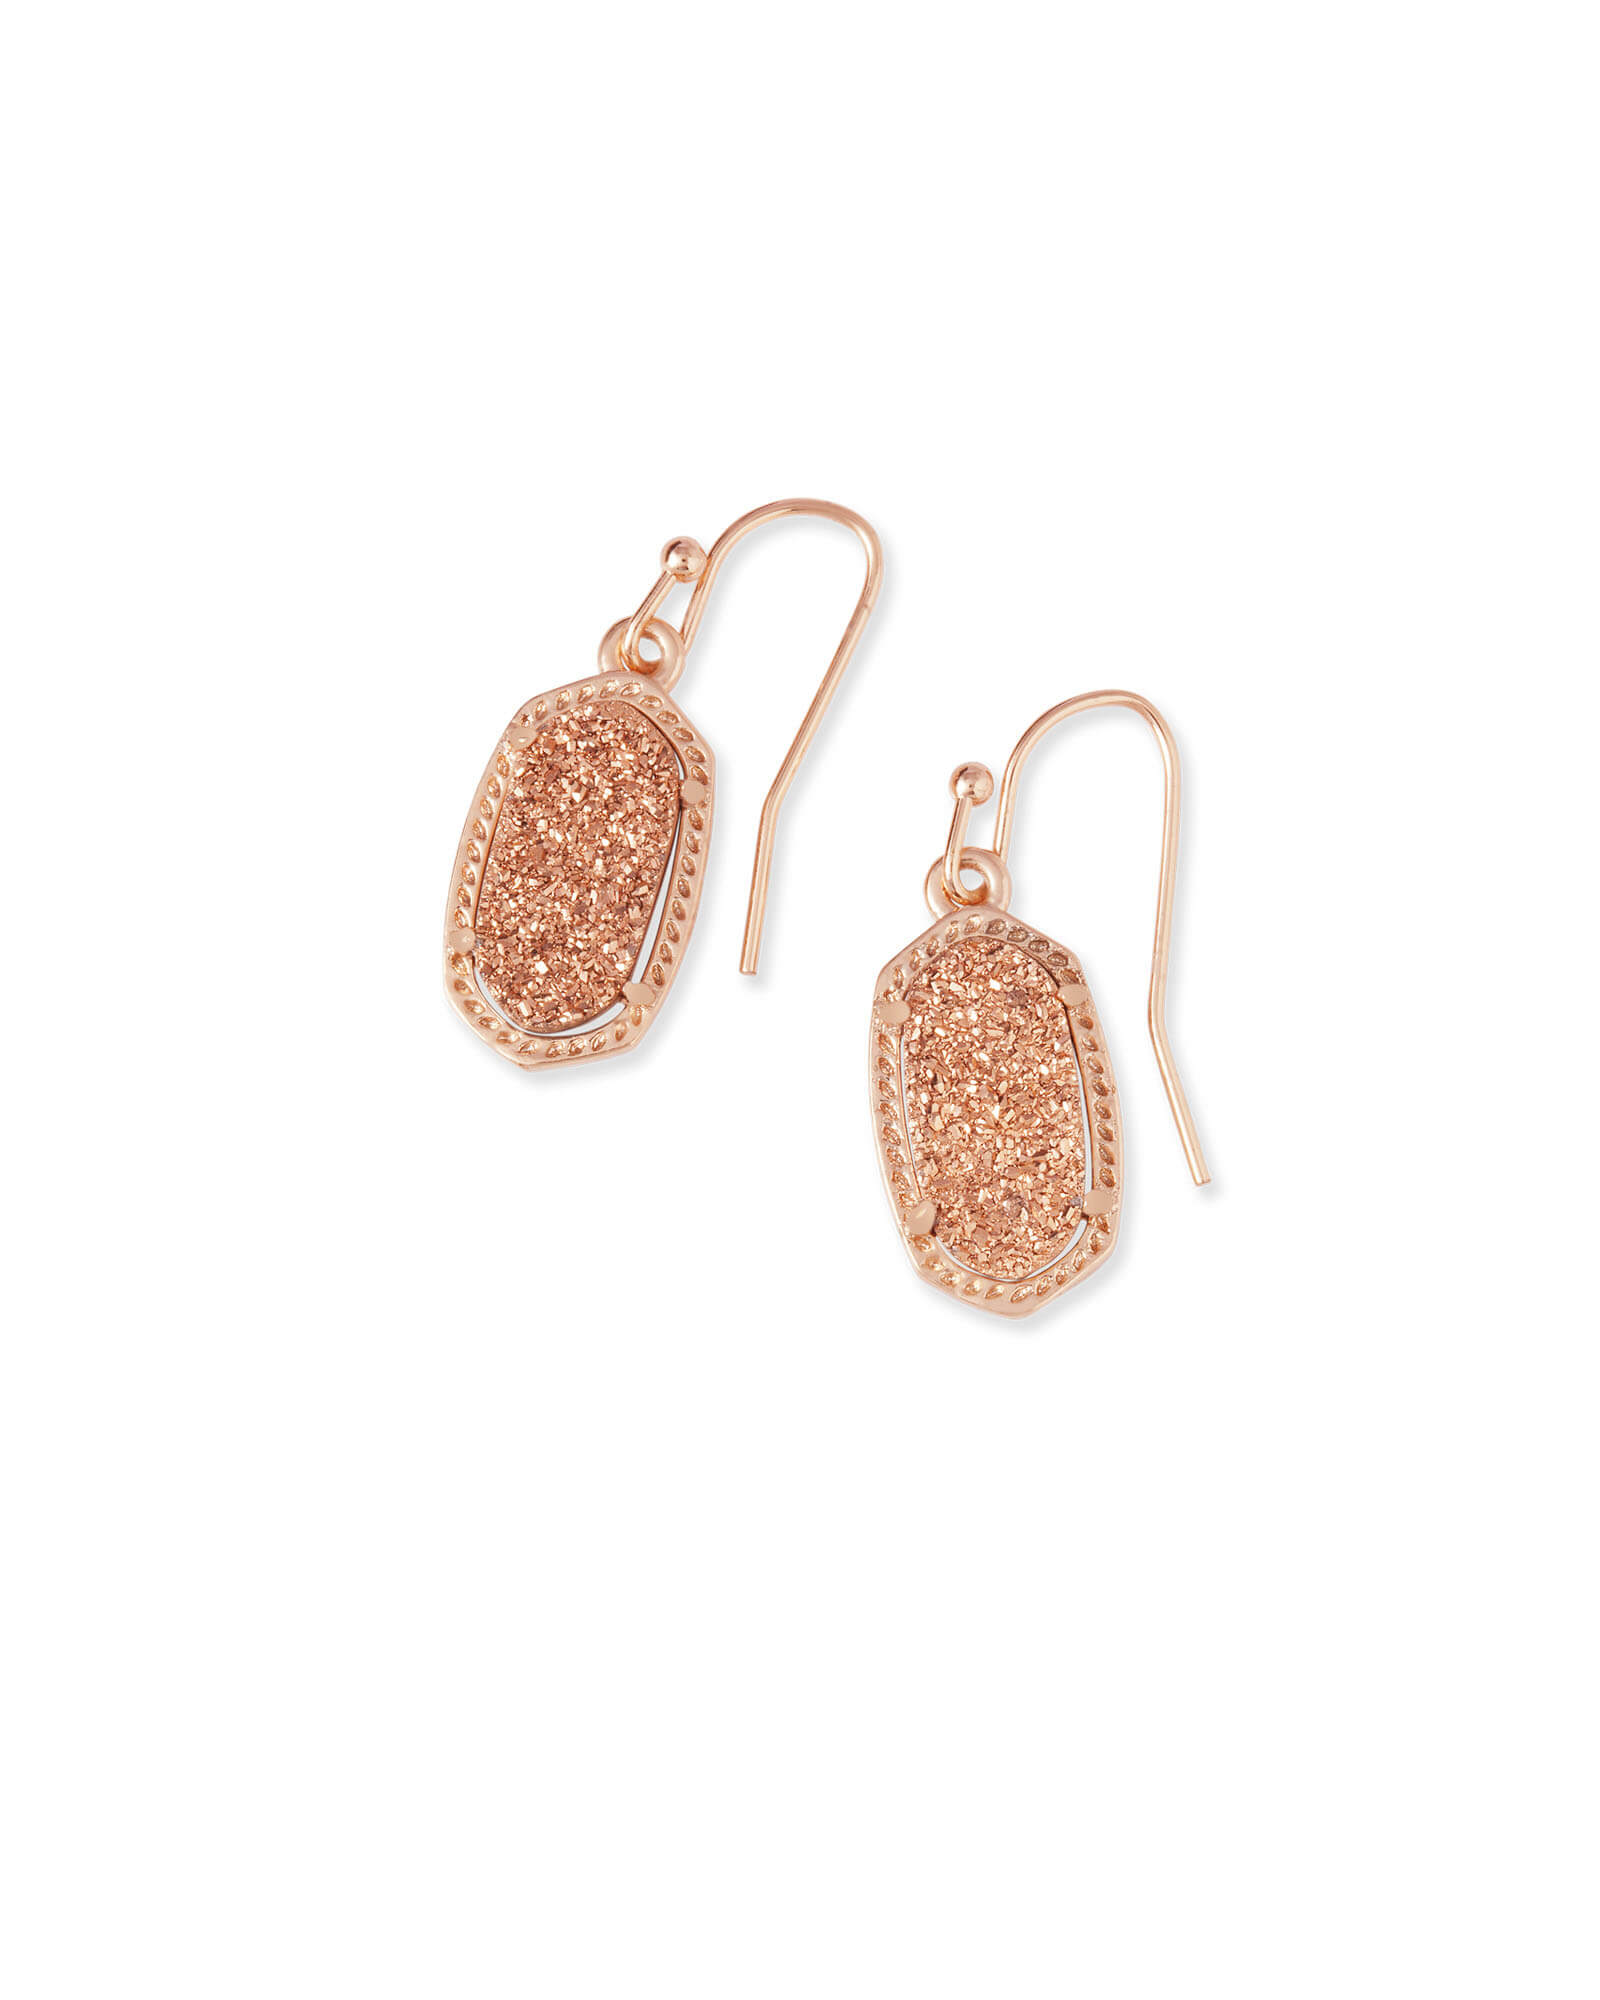 Lee Rose Gold Drop Earrings in Drusy Kendra Scott